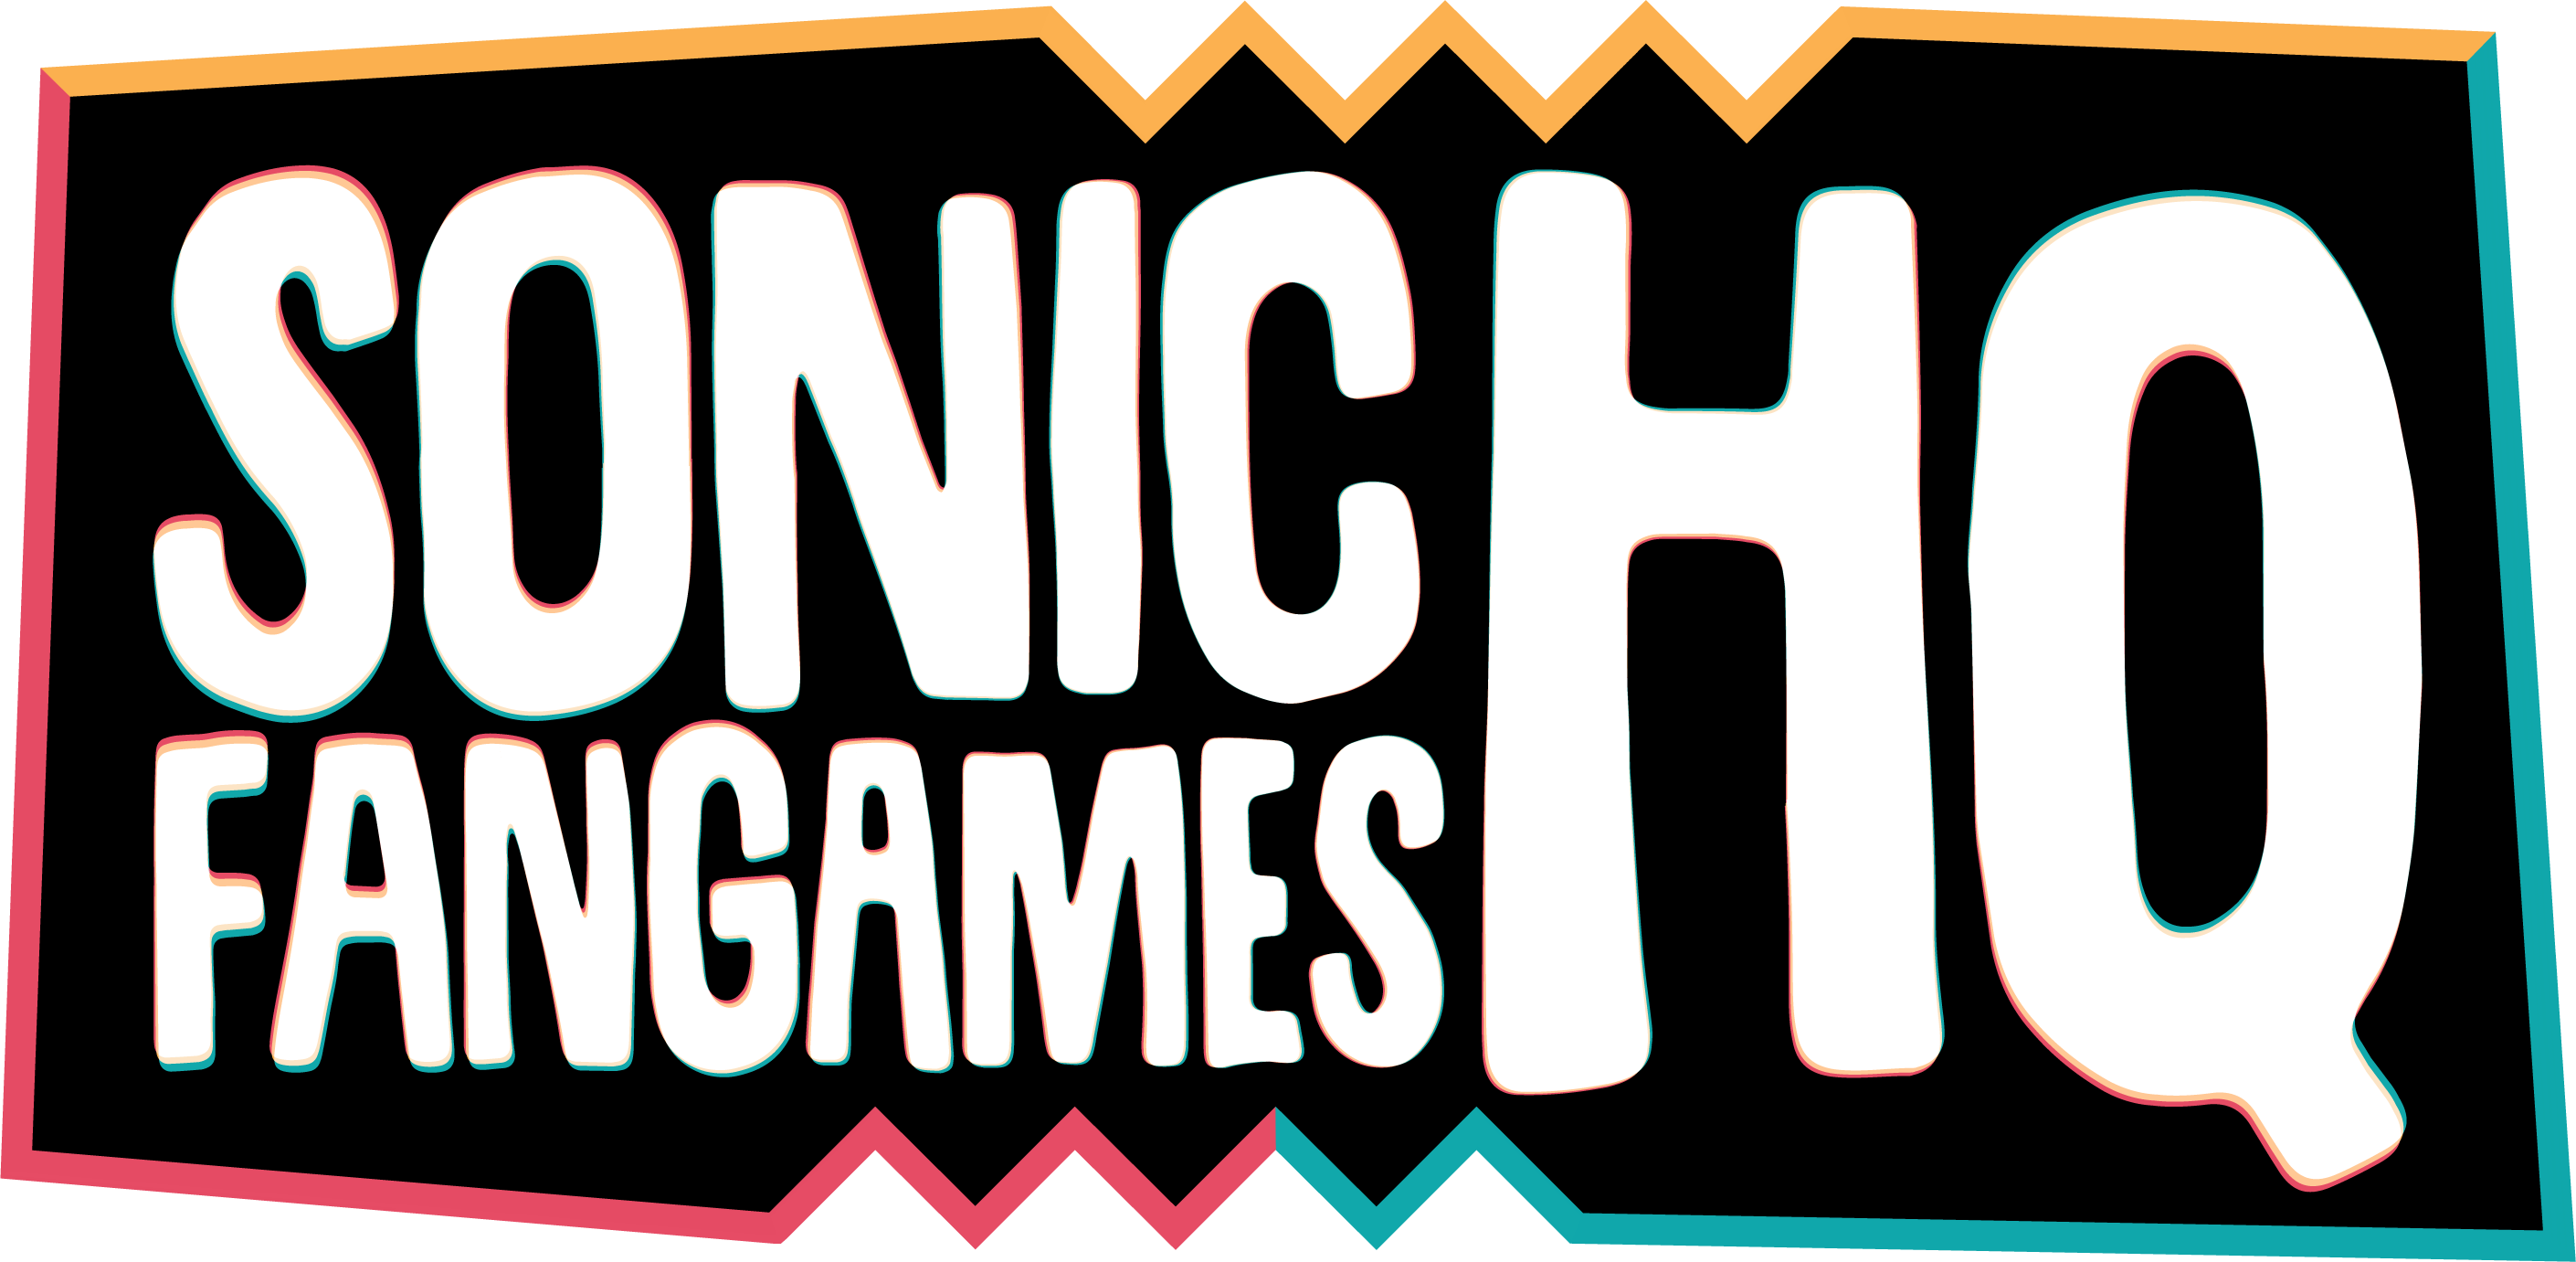 Readme sfghq guidelines sonic. Rules clipart guideline